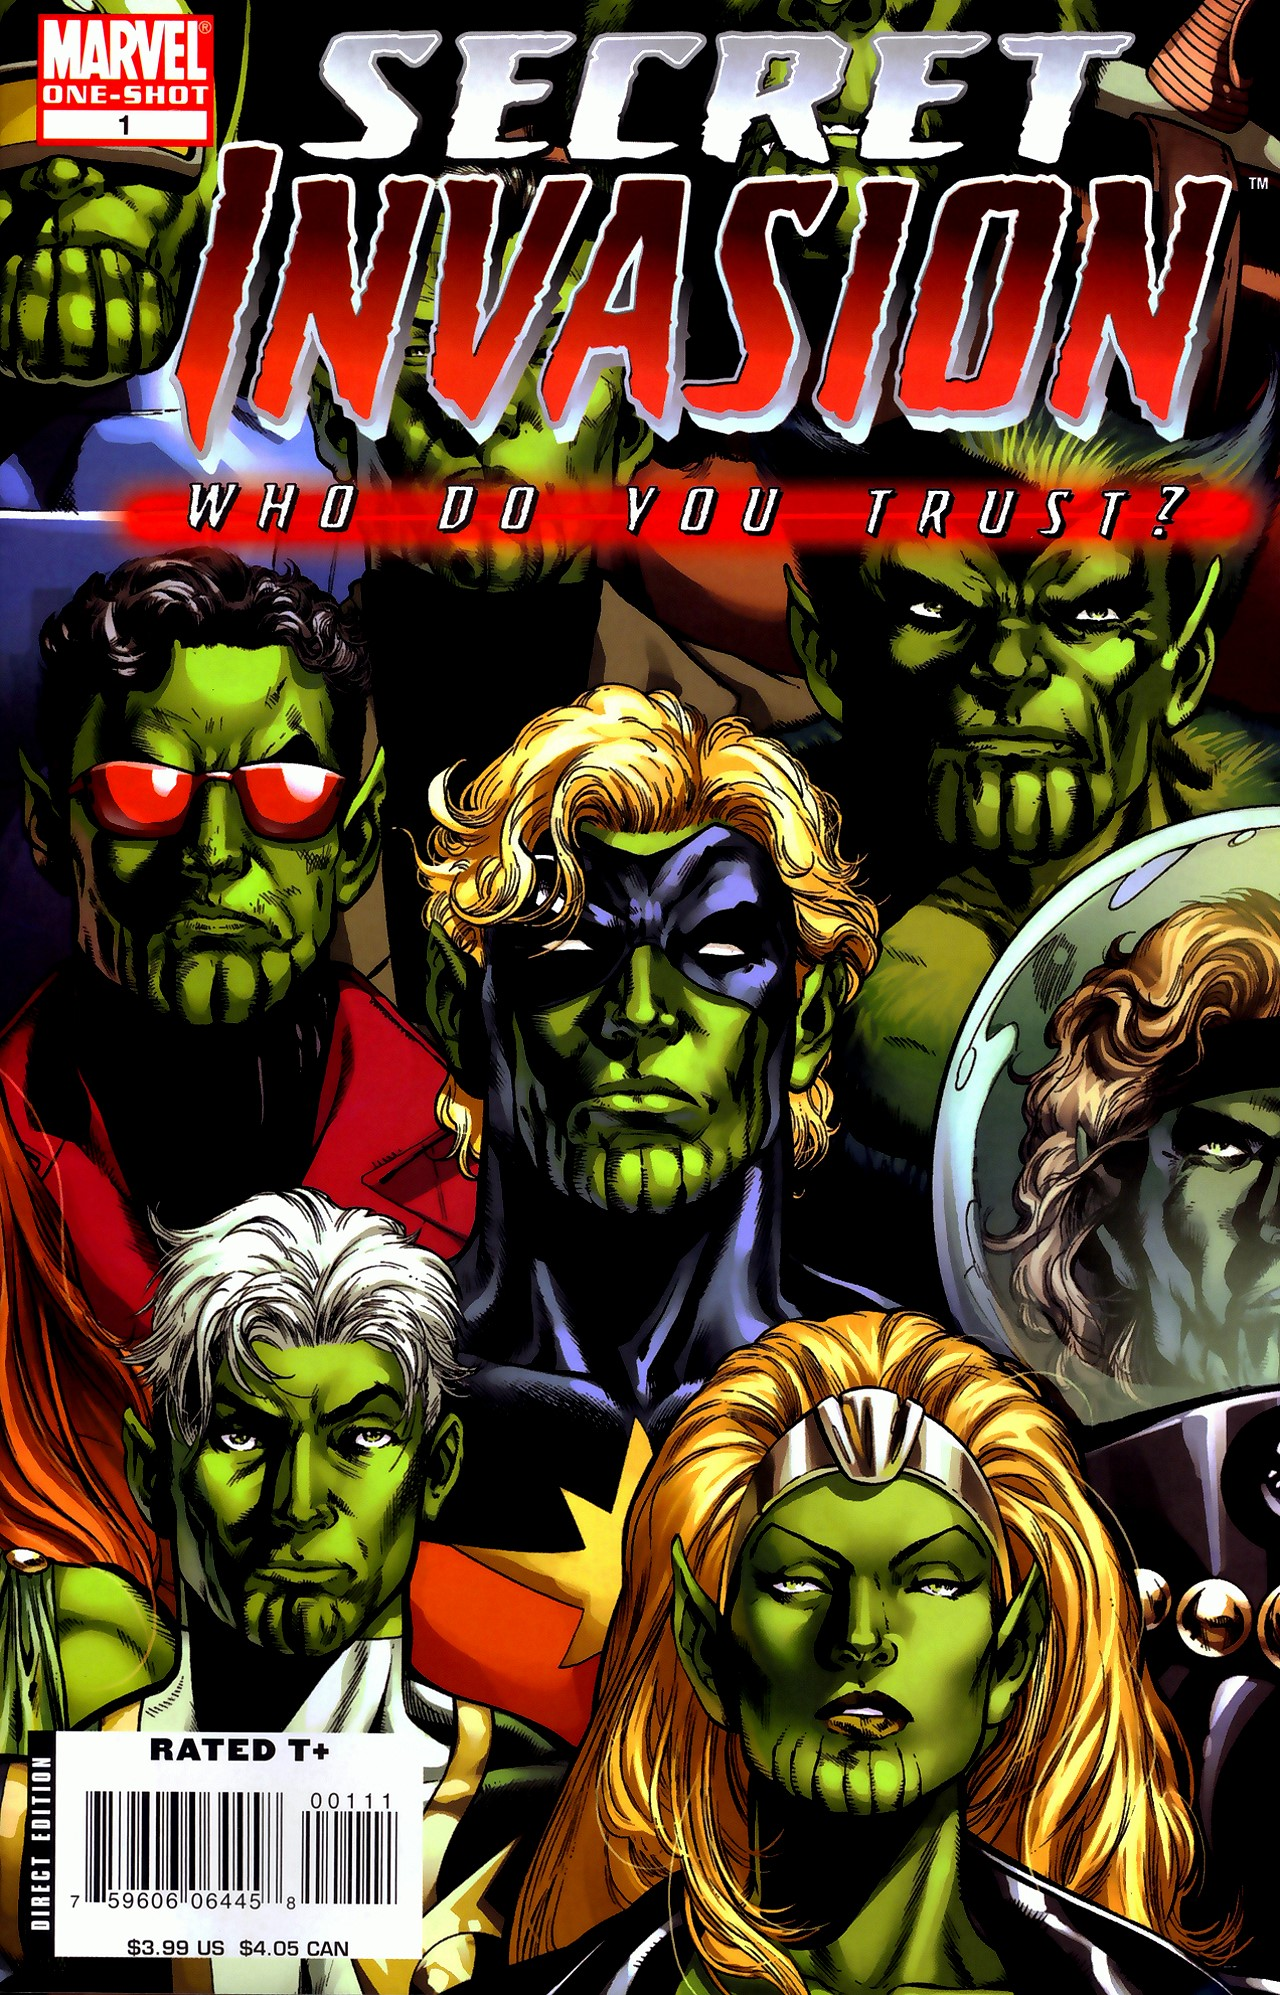 Read online Secret Invasion: Who Do You Trust? comic -  Issue # Full - 1